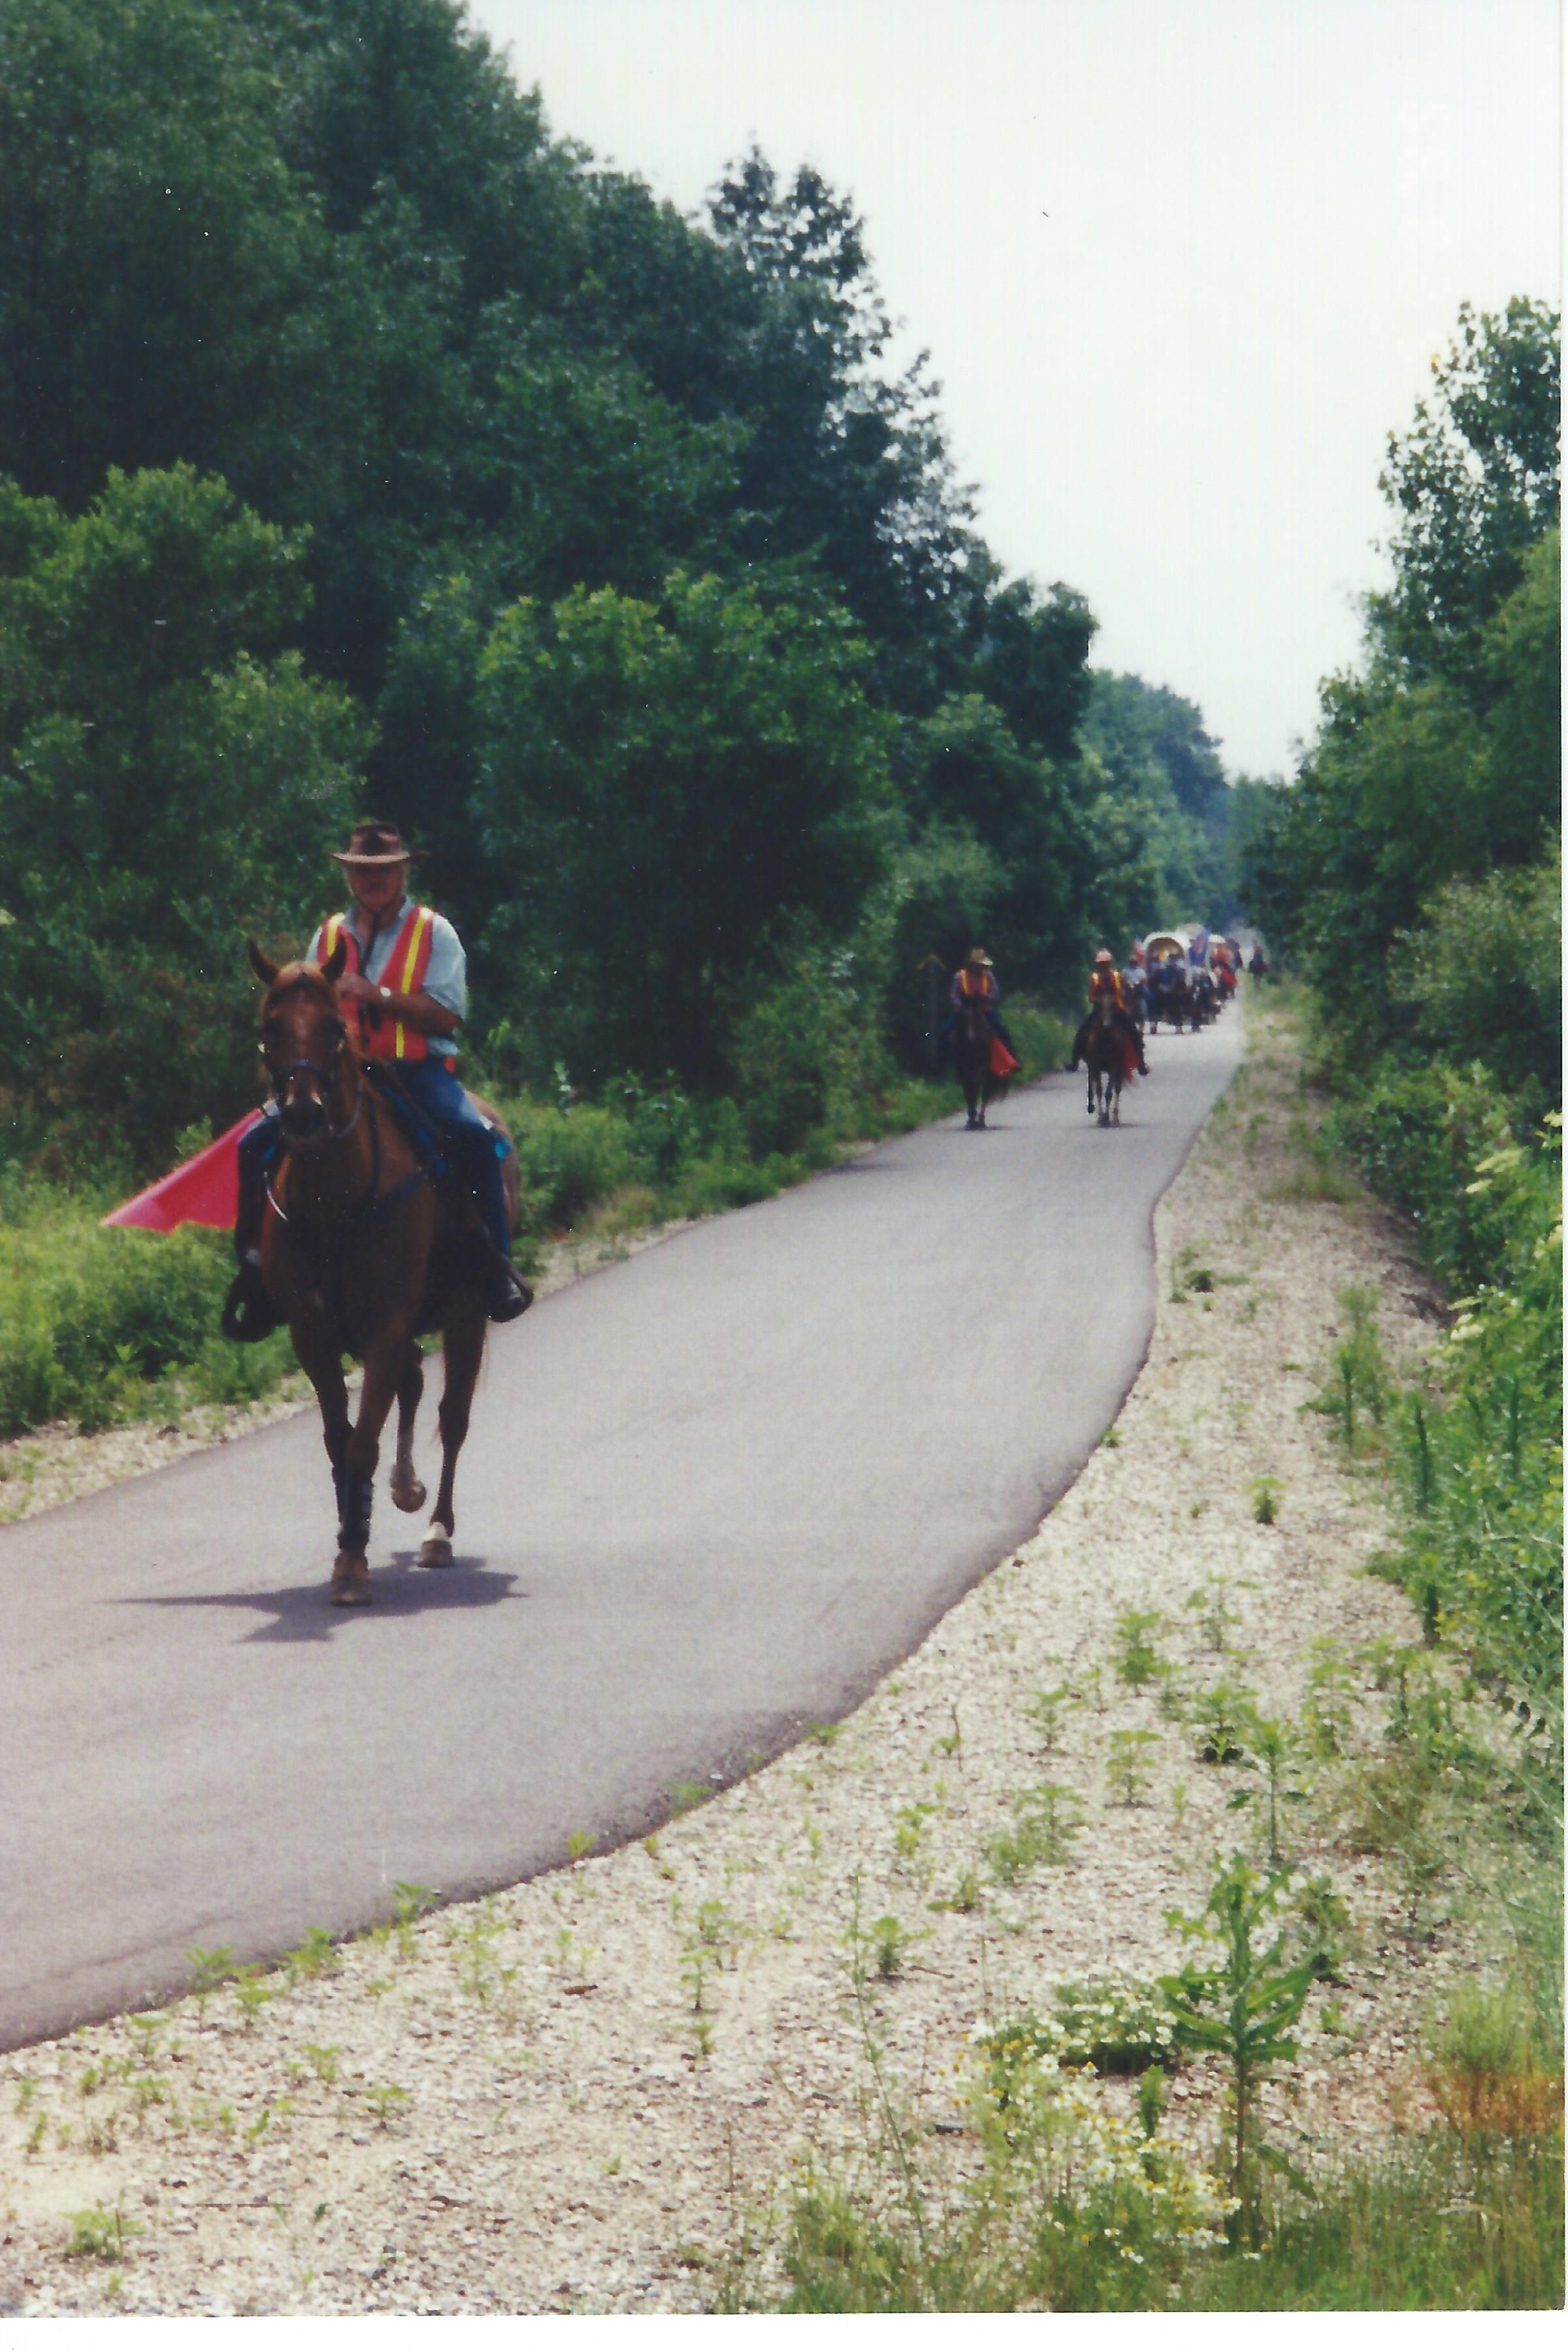 3. Equestrians Using the Trail